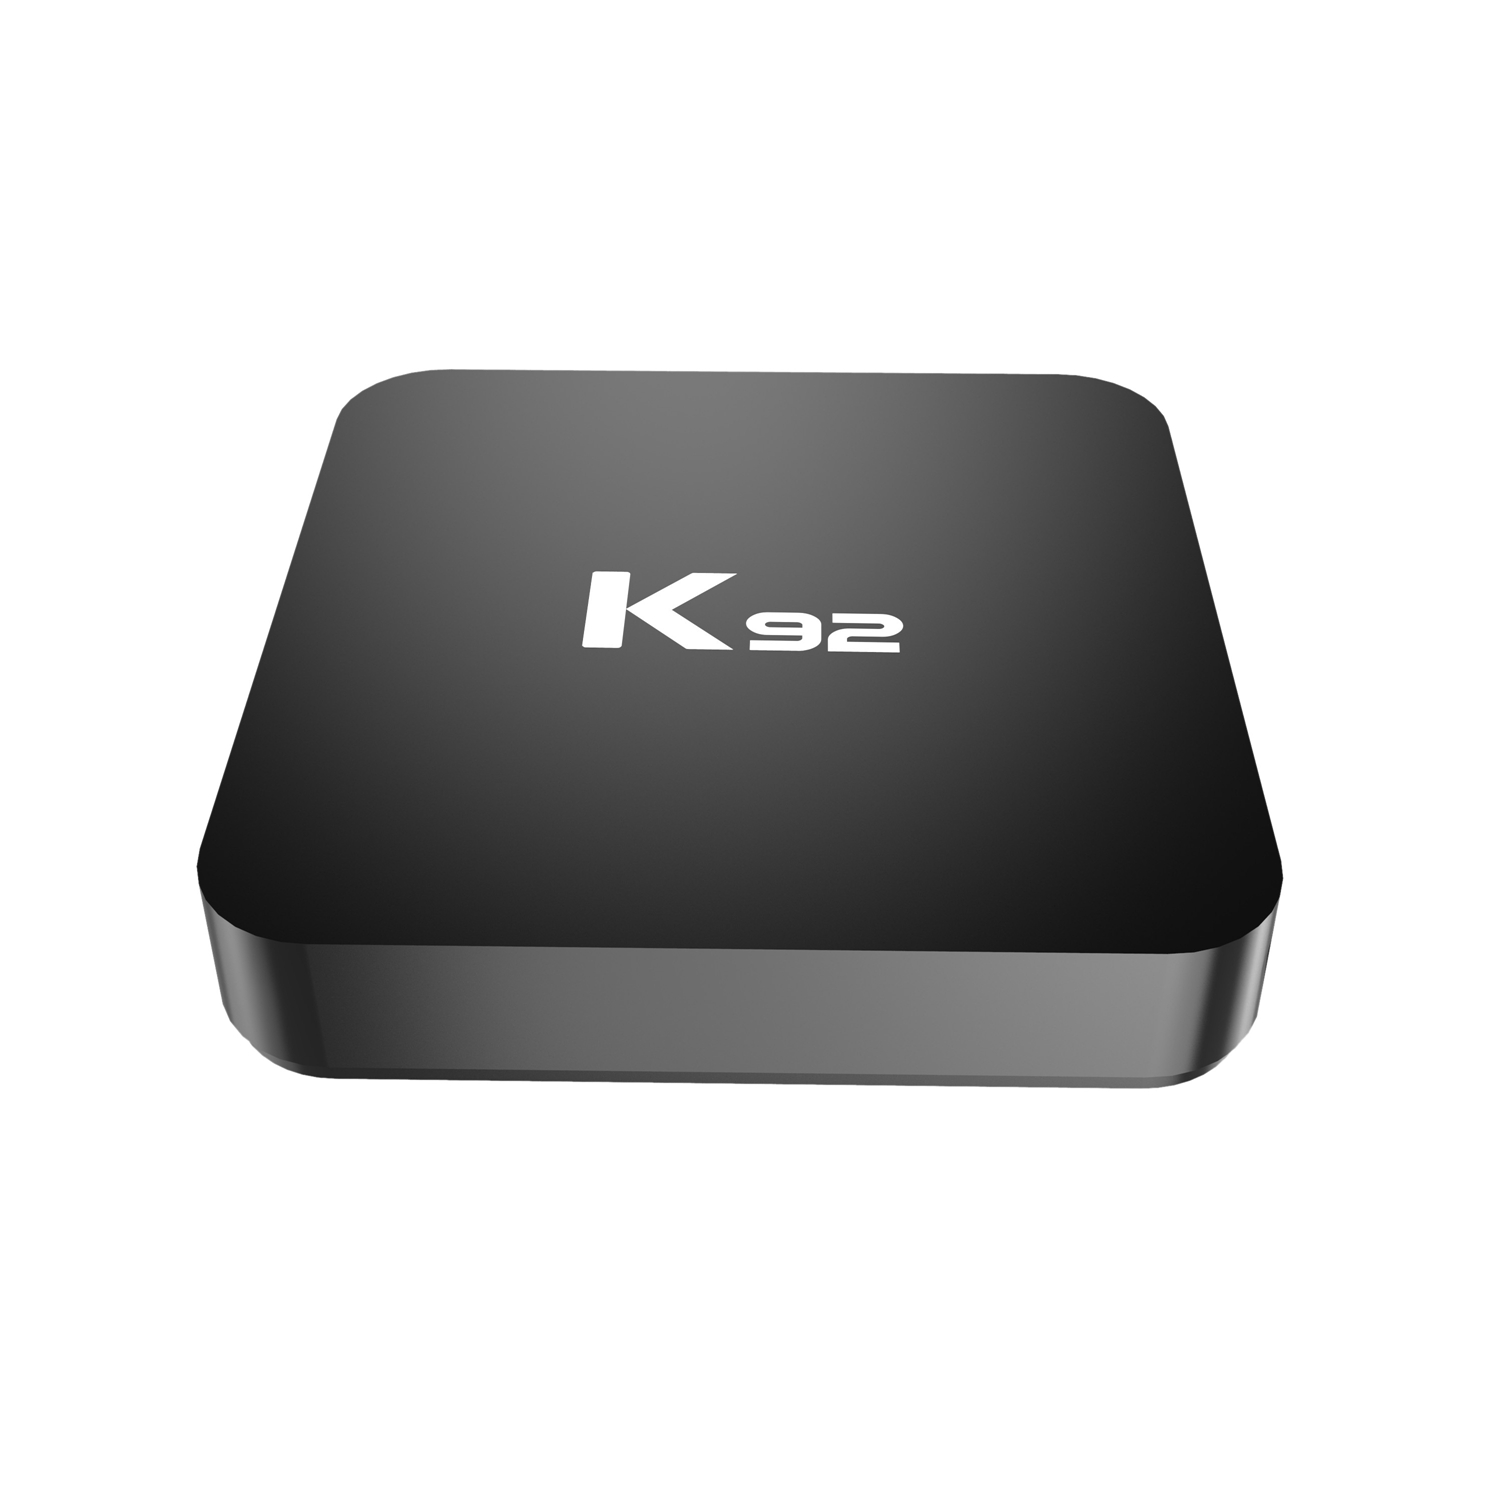 Топ K92 S905X2 Android 8,1 Smart tv Box 4 Гб ram 2,4G/5G WiFi Bluetooth 4,1 телеприставка image